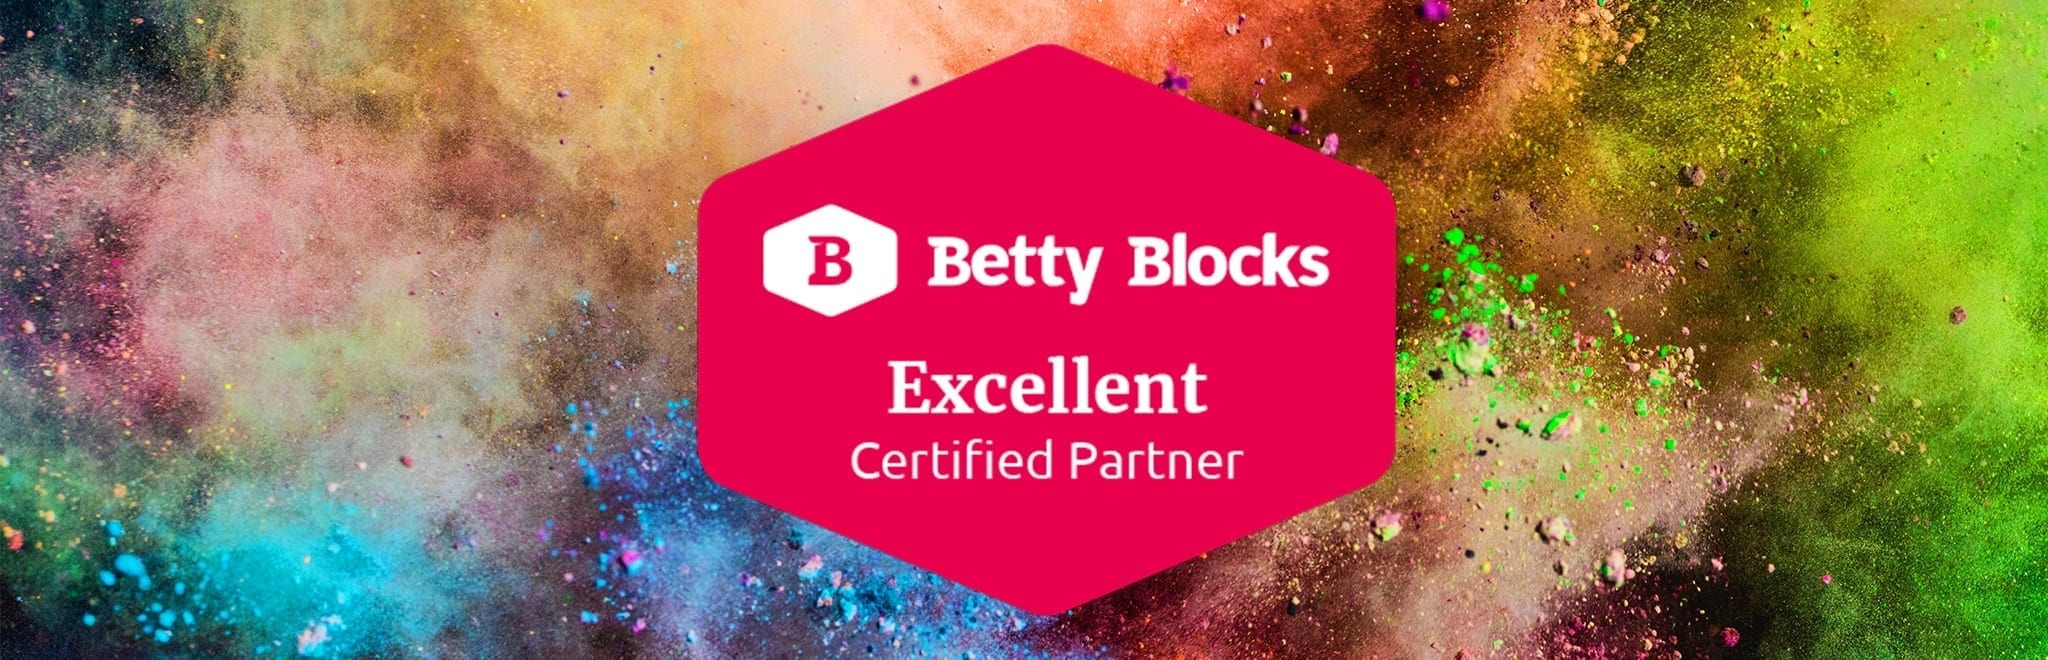 Betty Blocks Excellent Certified Partner